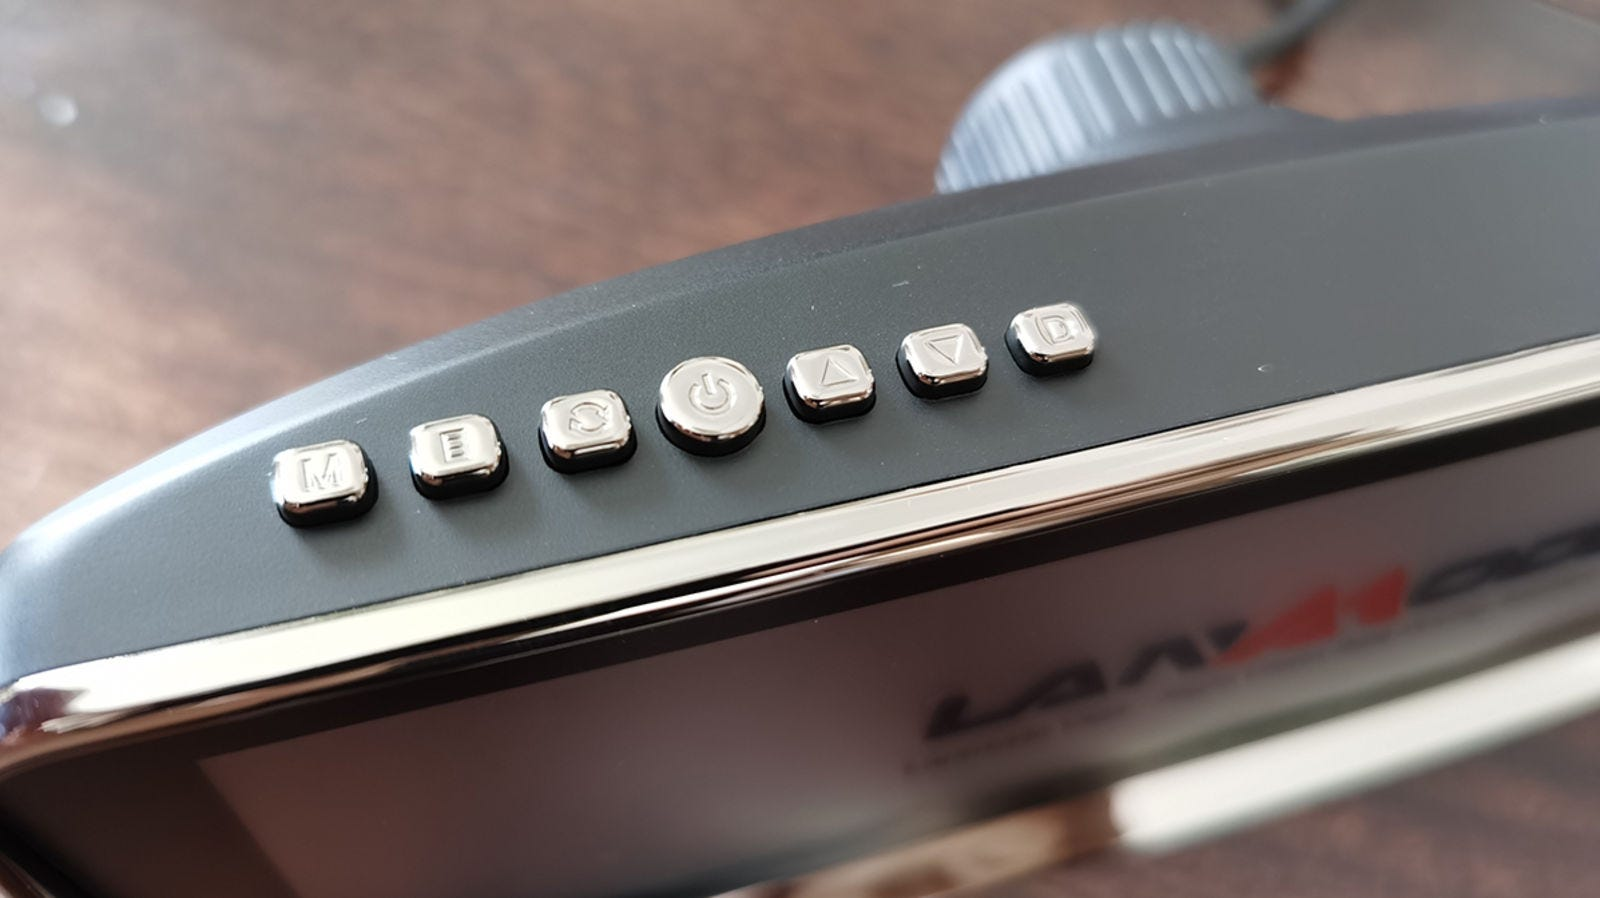 A close-up of the buttons to adjust the image on the screen.